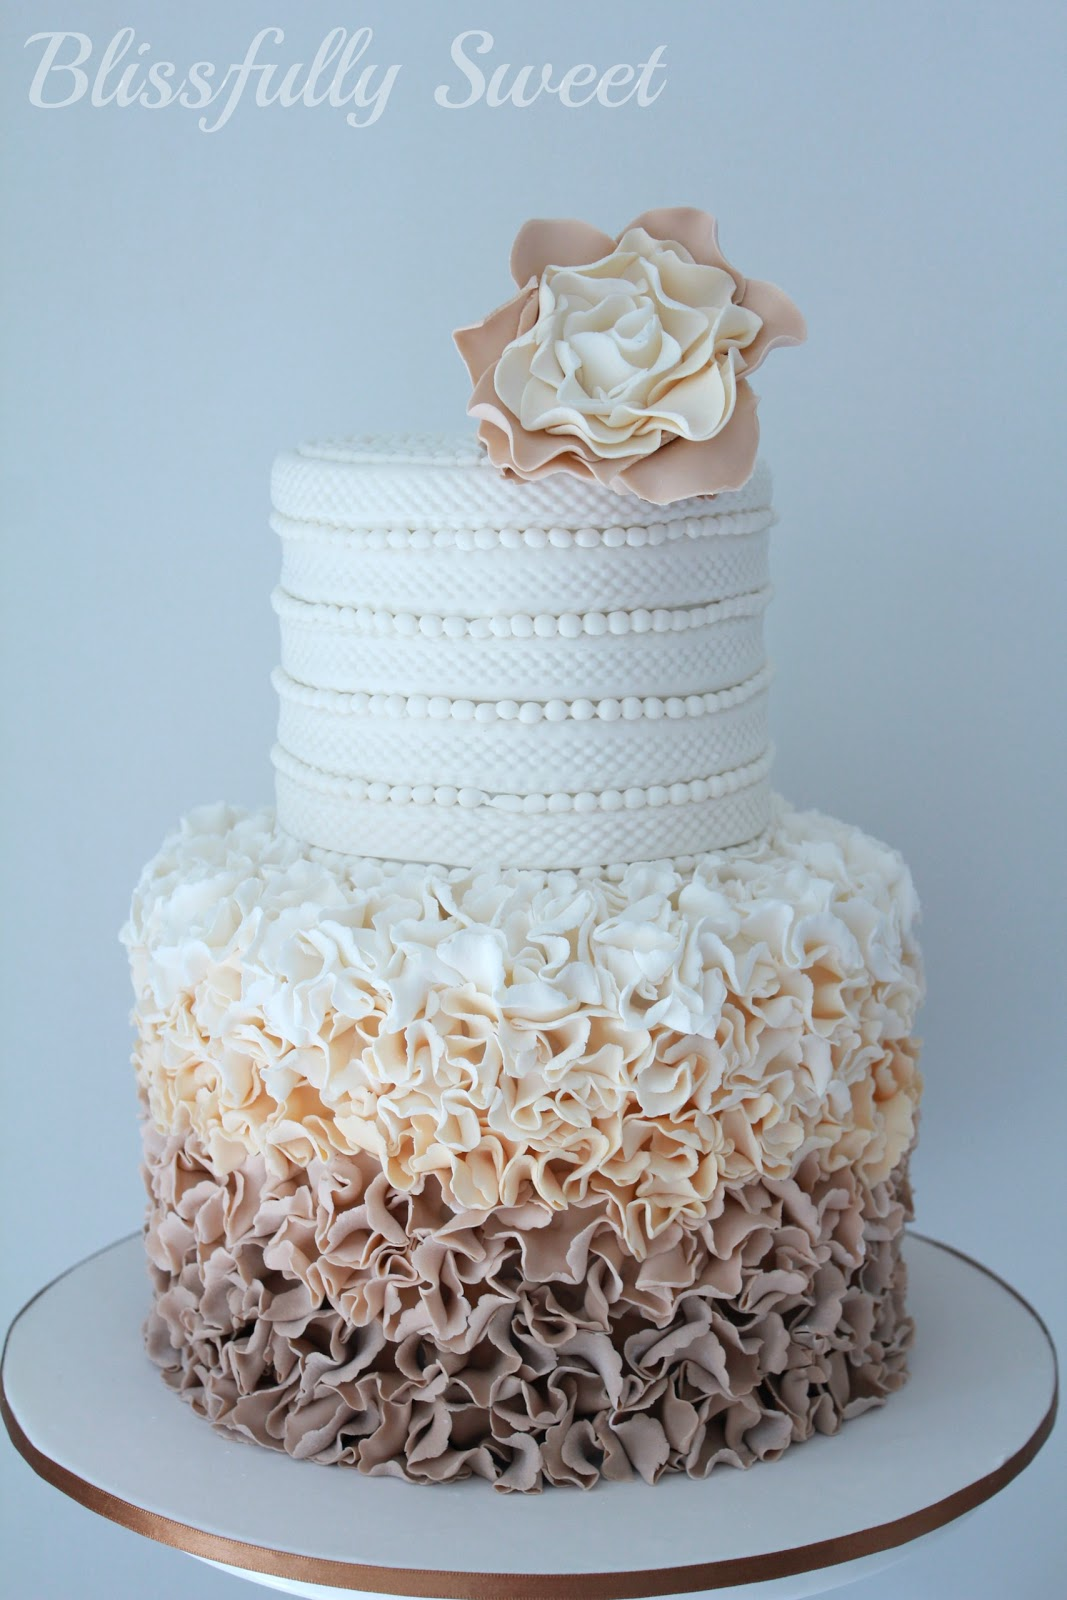 Blissfully Sweet A Ruffled Ombre Moccha Engagement Cake